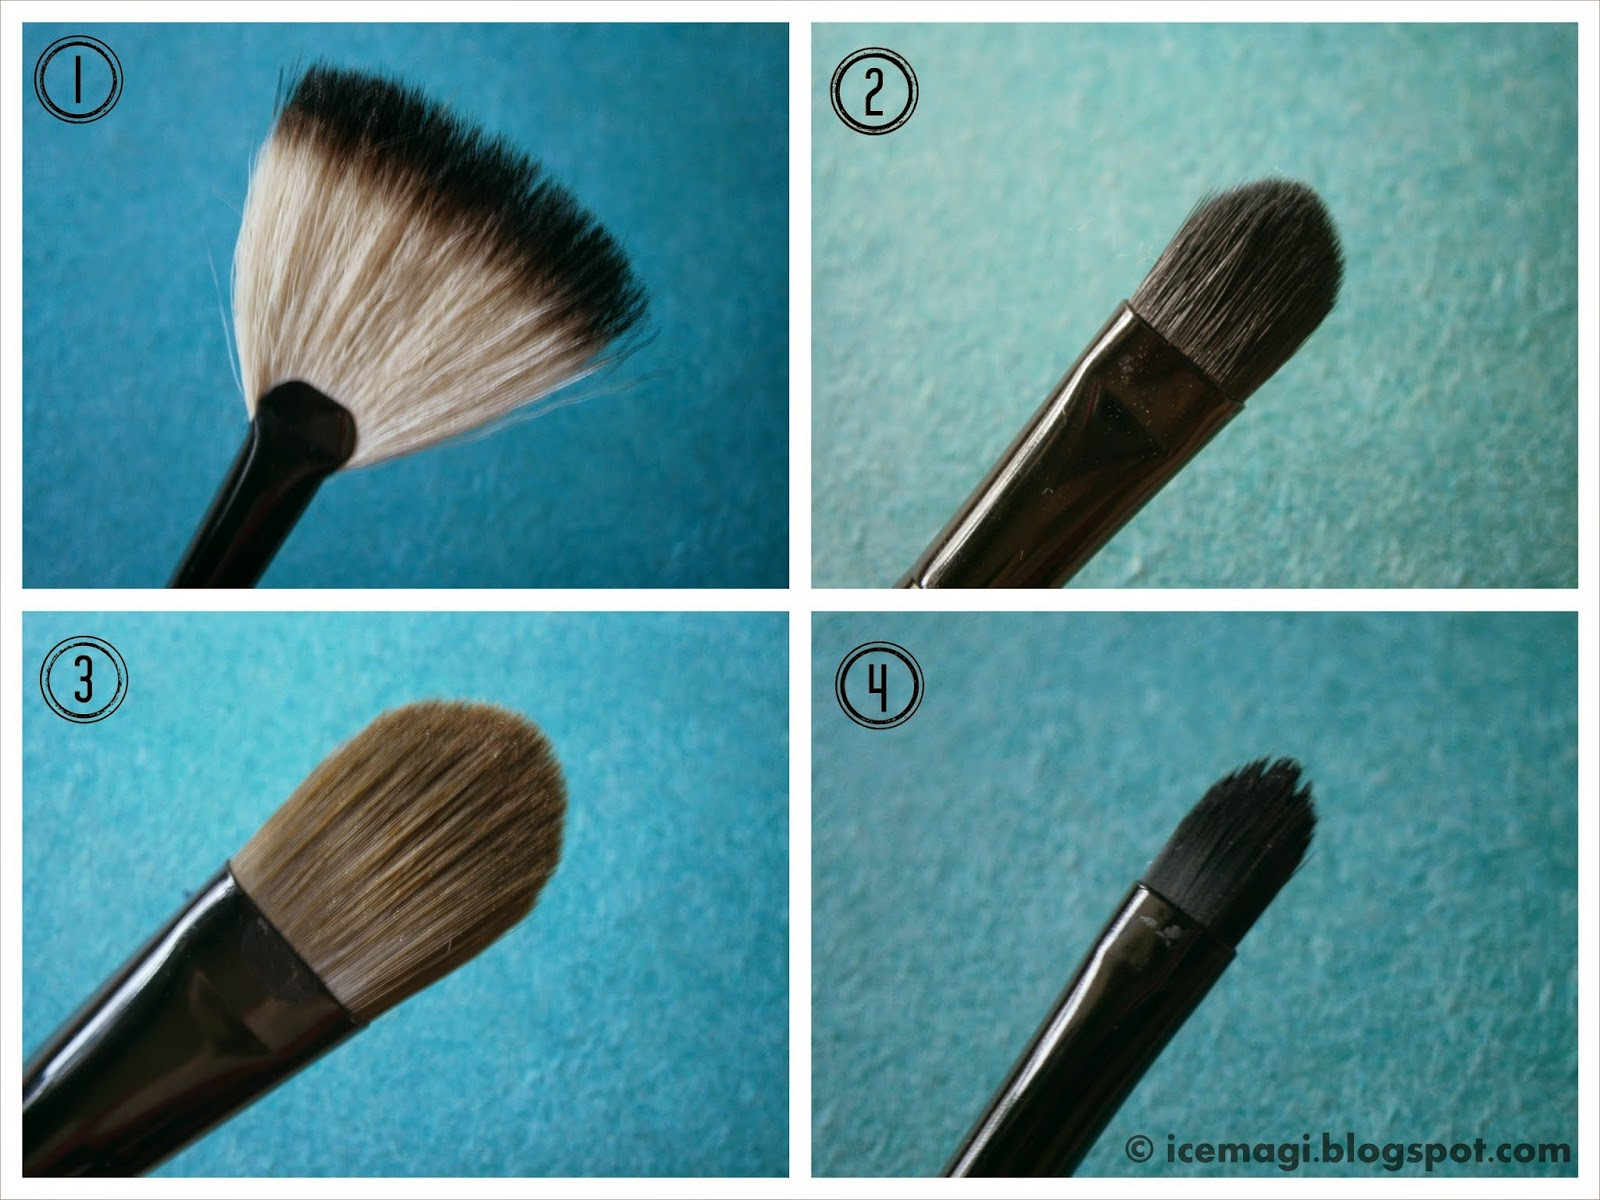 Oriflame makeup brushes